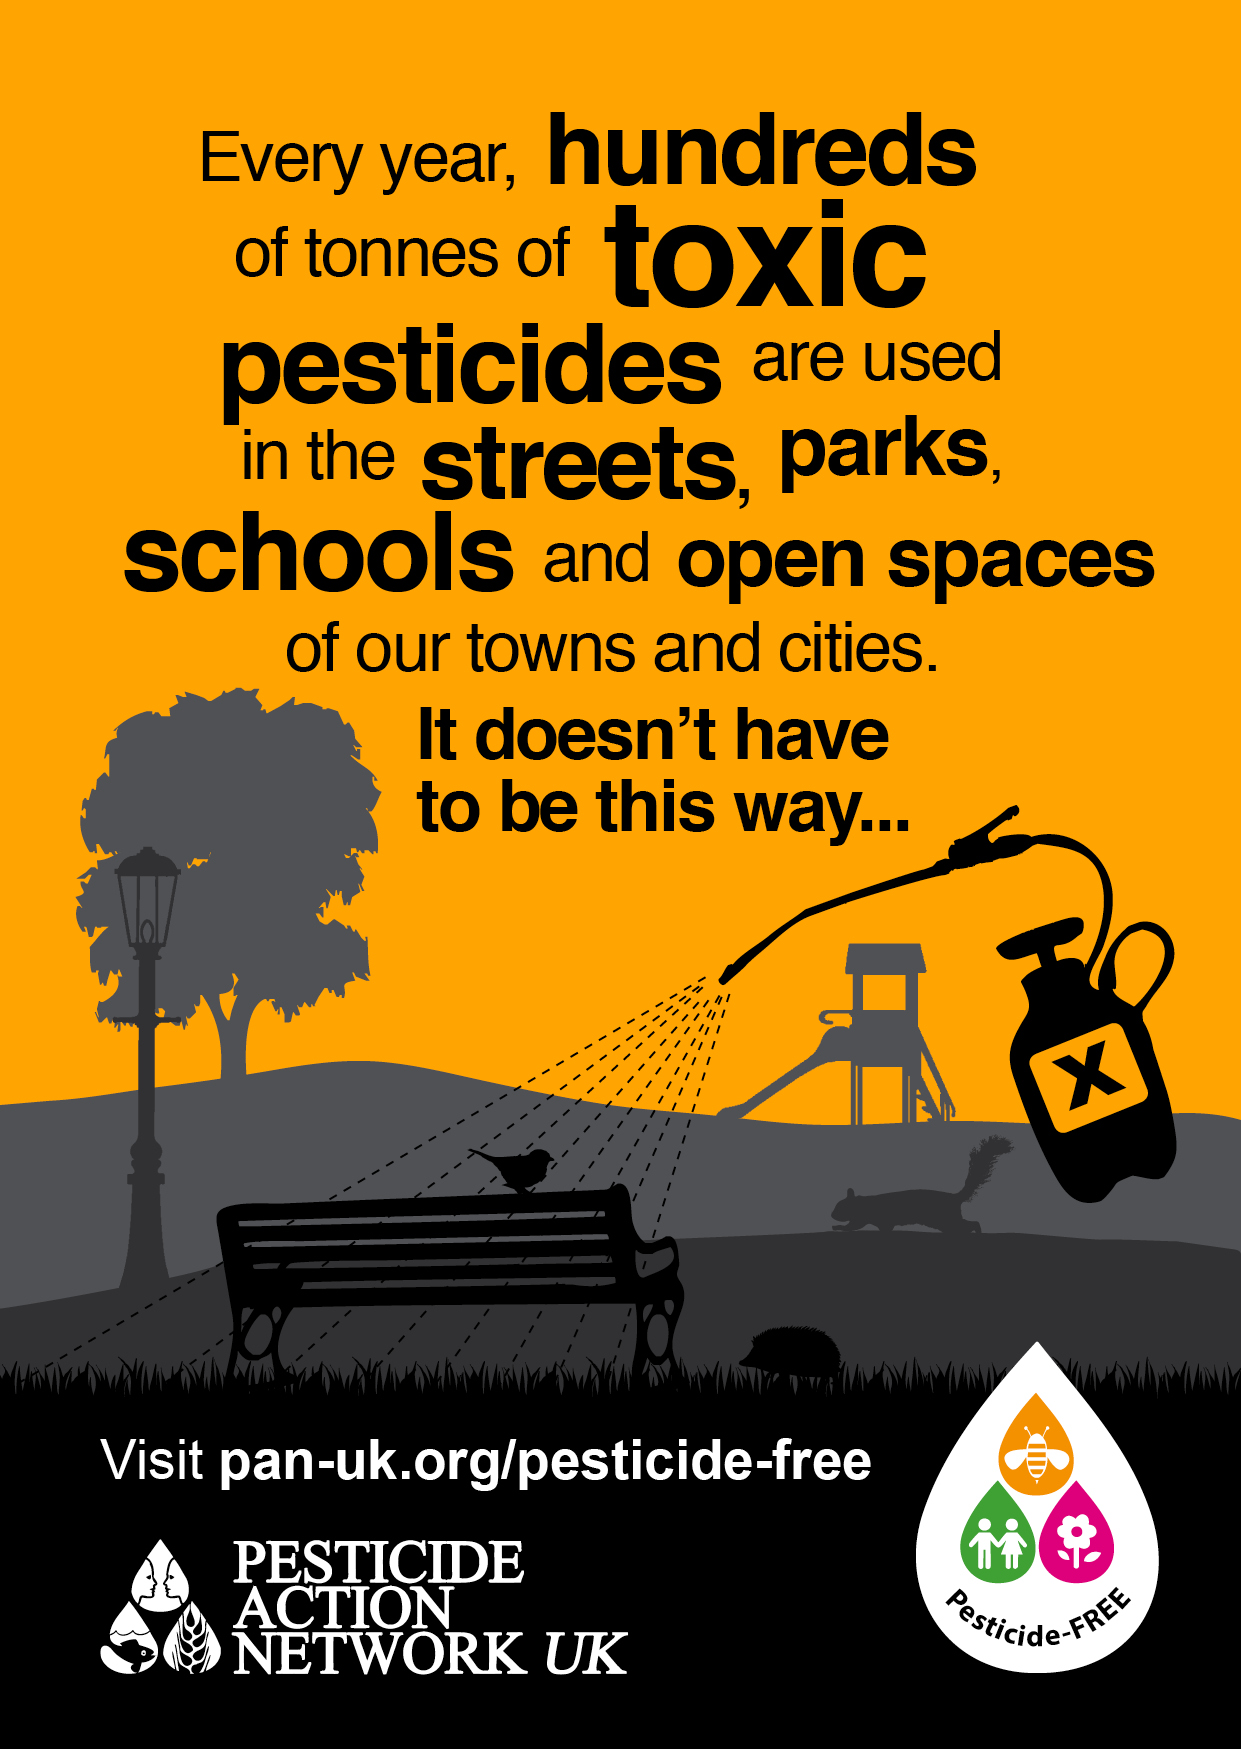 Campaign for Pesticide-Free Towns